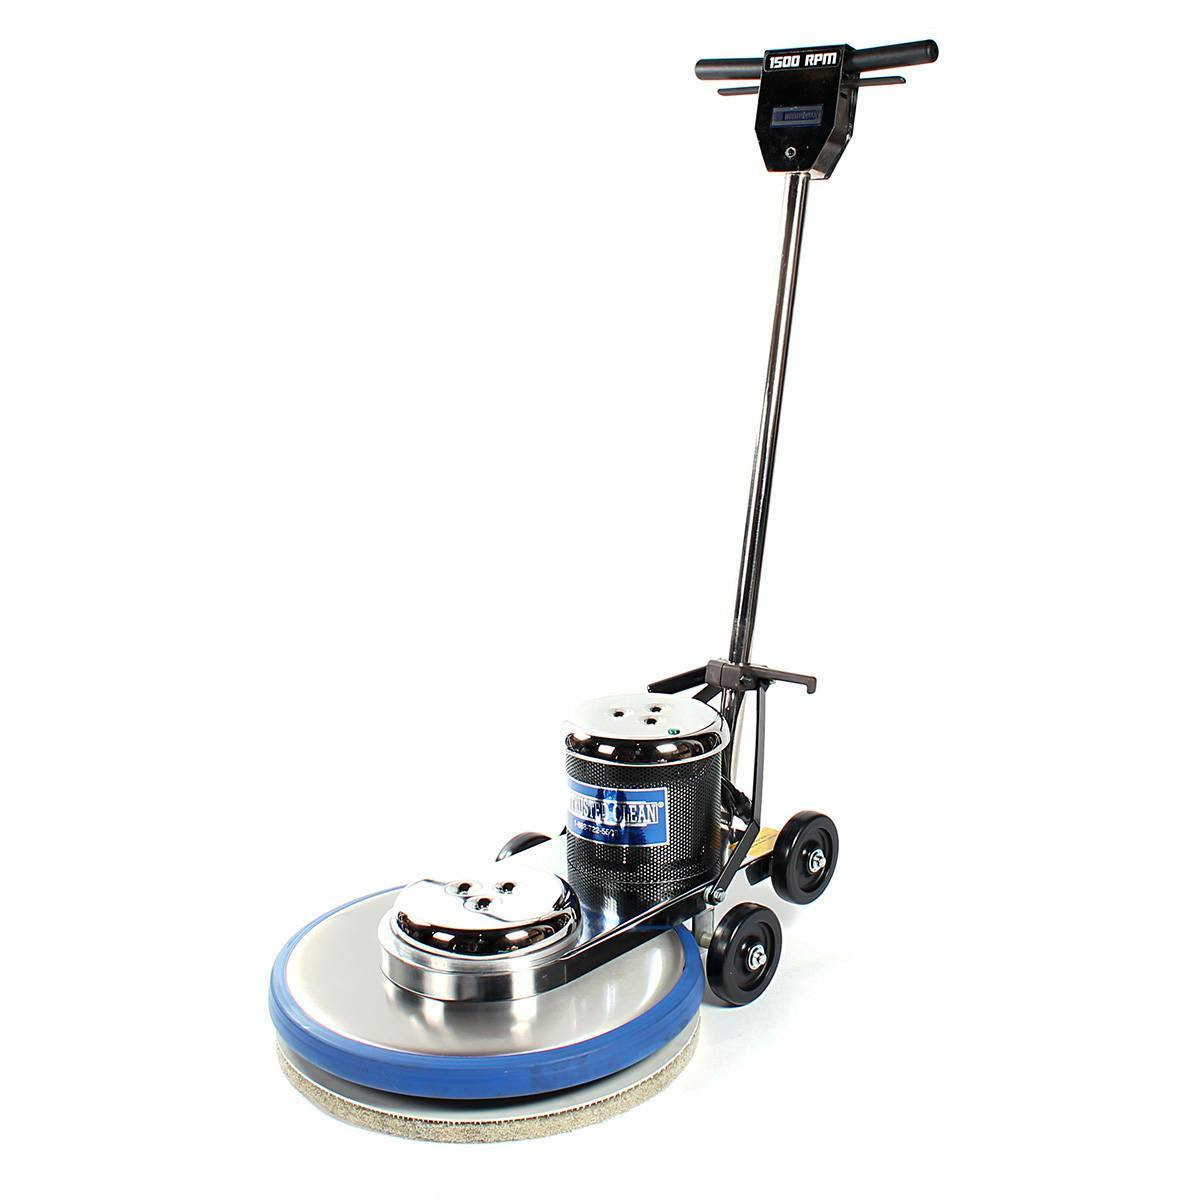 20 Quot Trusted Clean Polished Steel Body Floor Burnisher